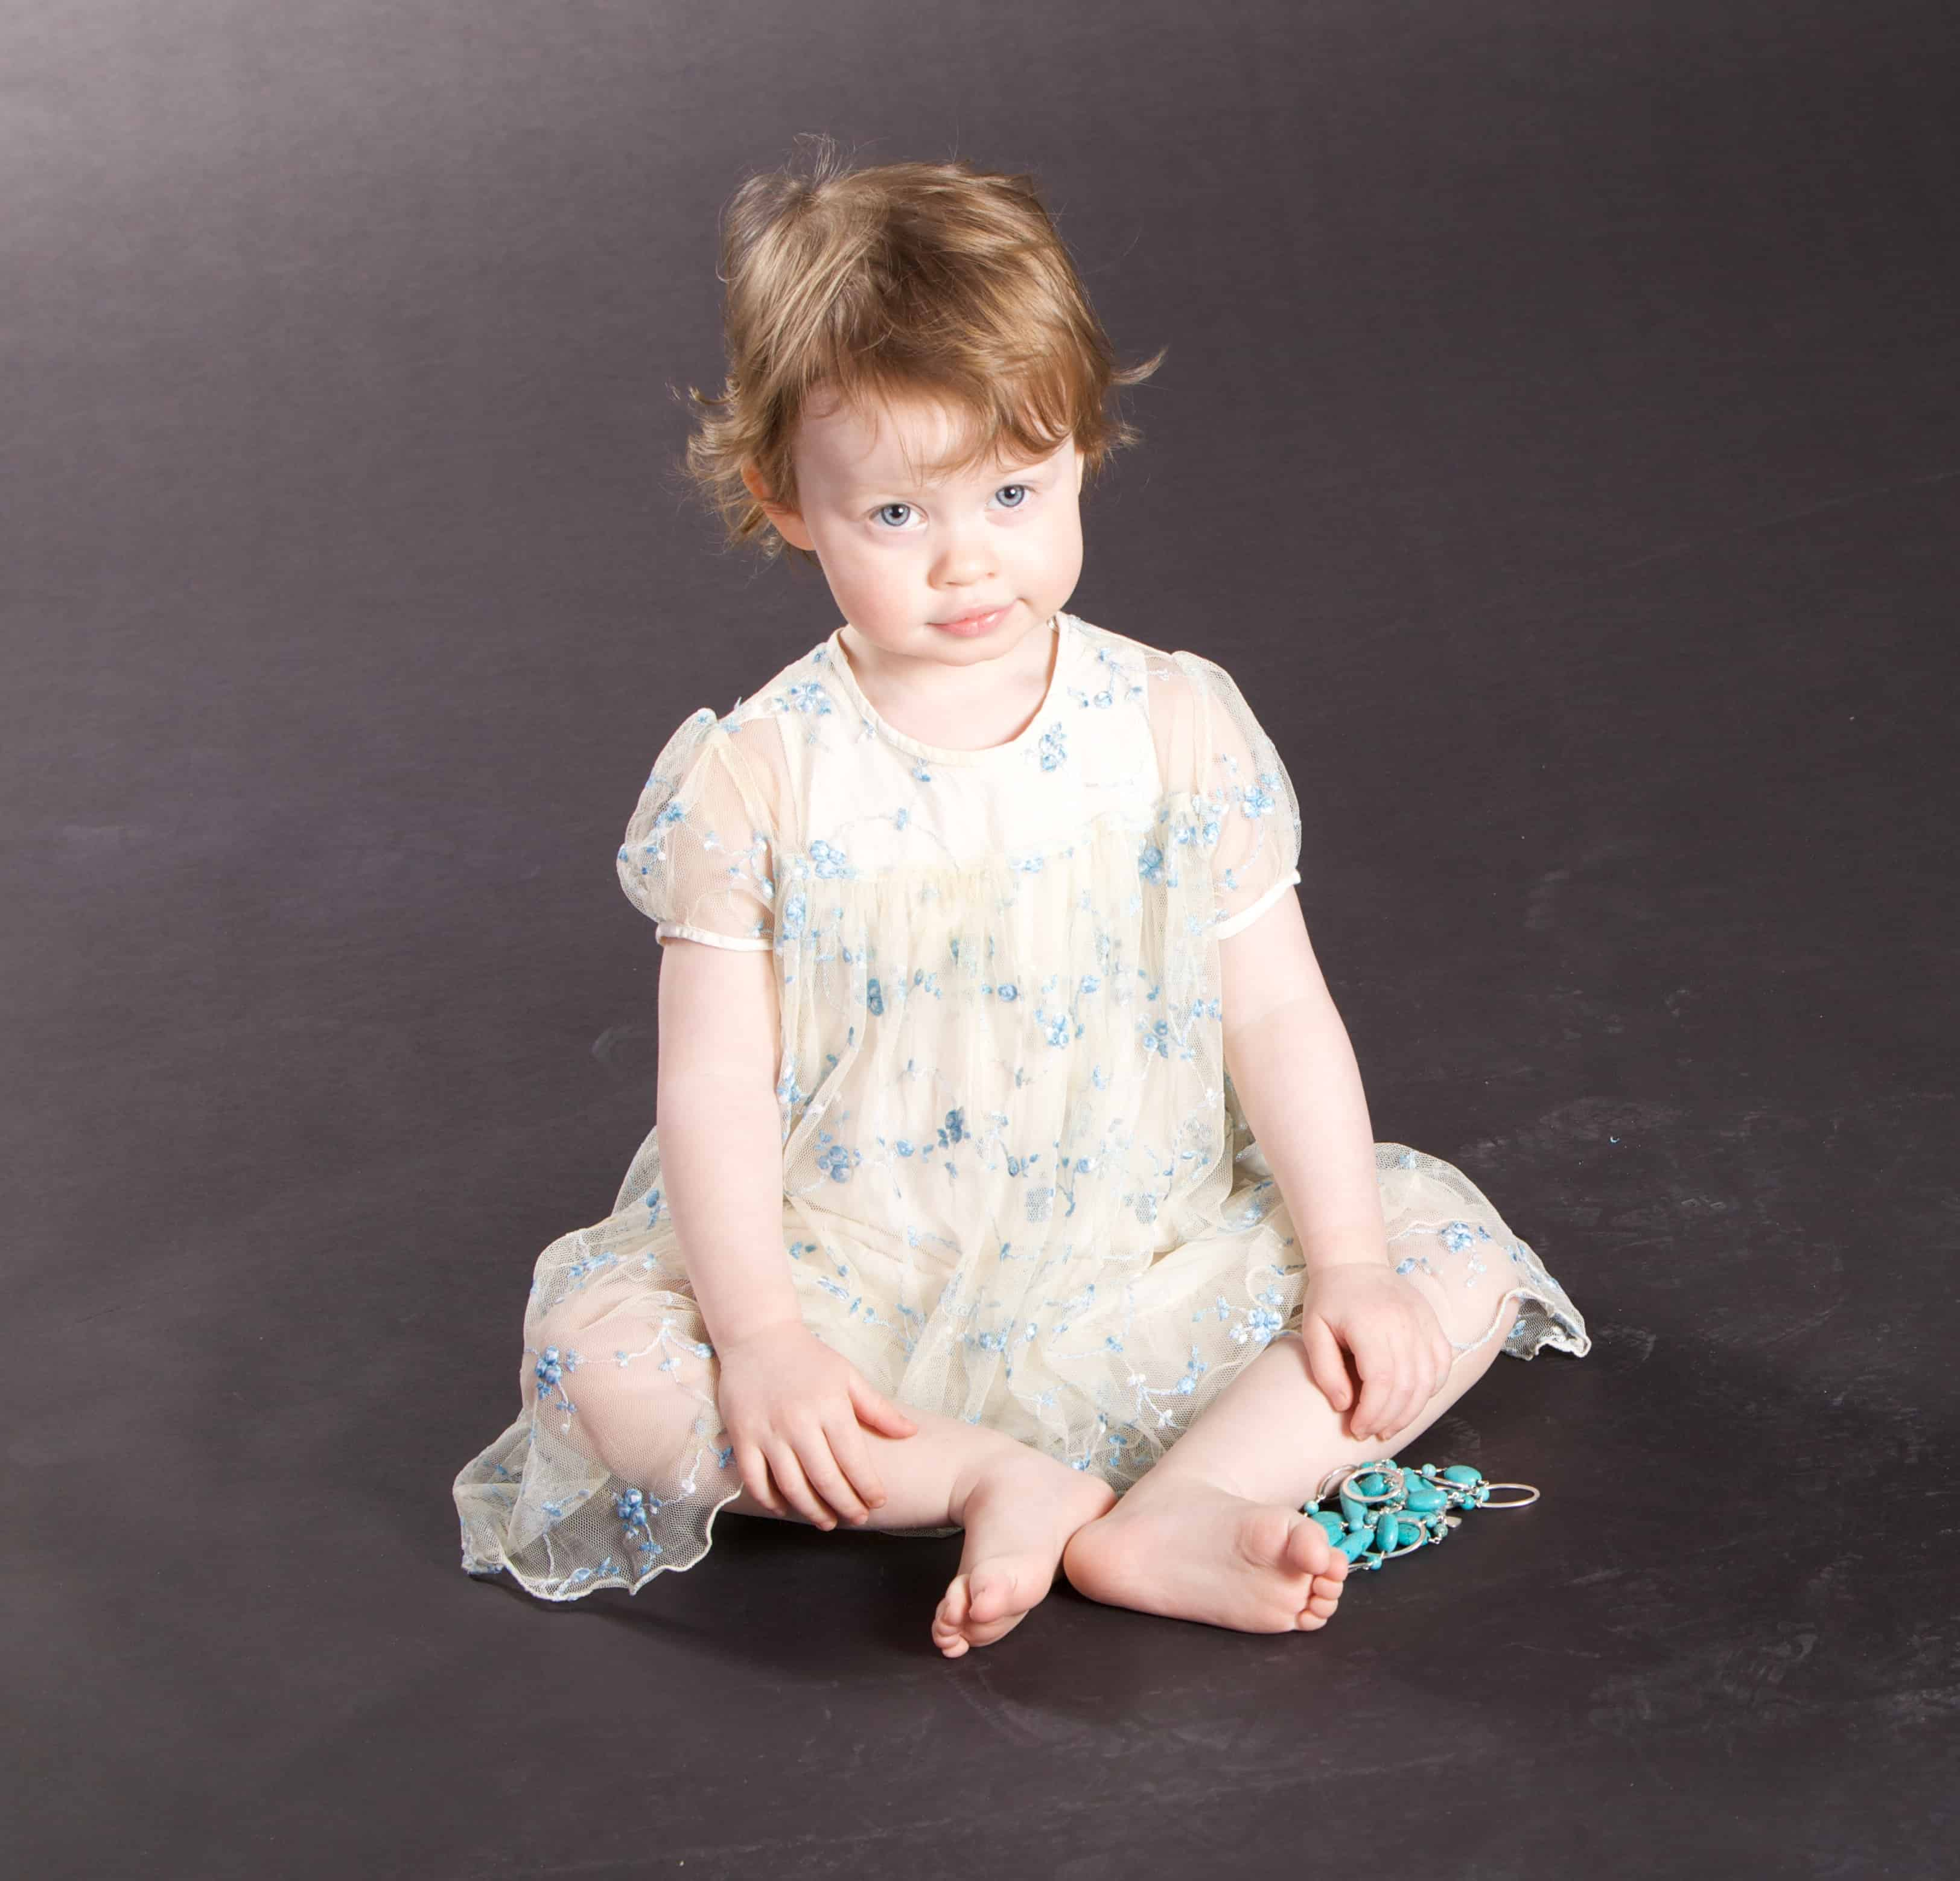 Tips on taking portraits of young children